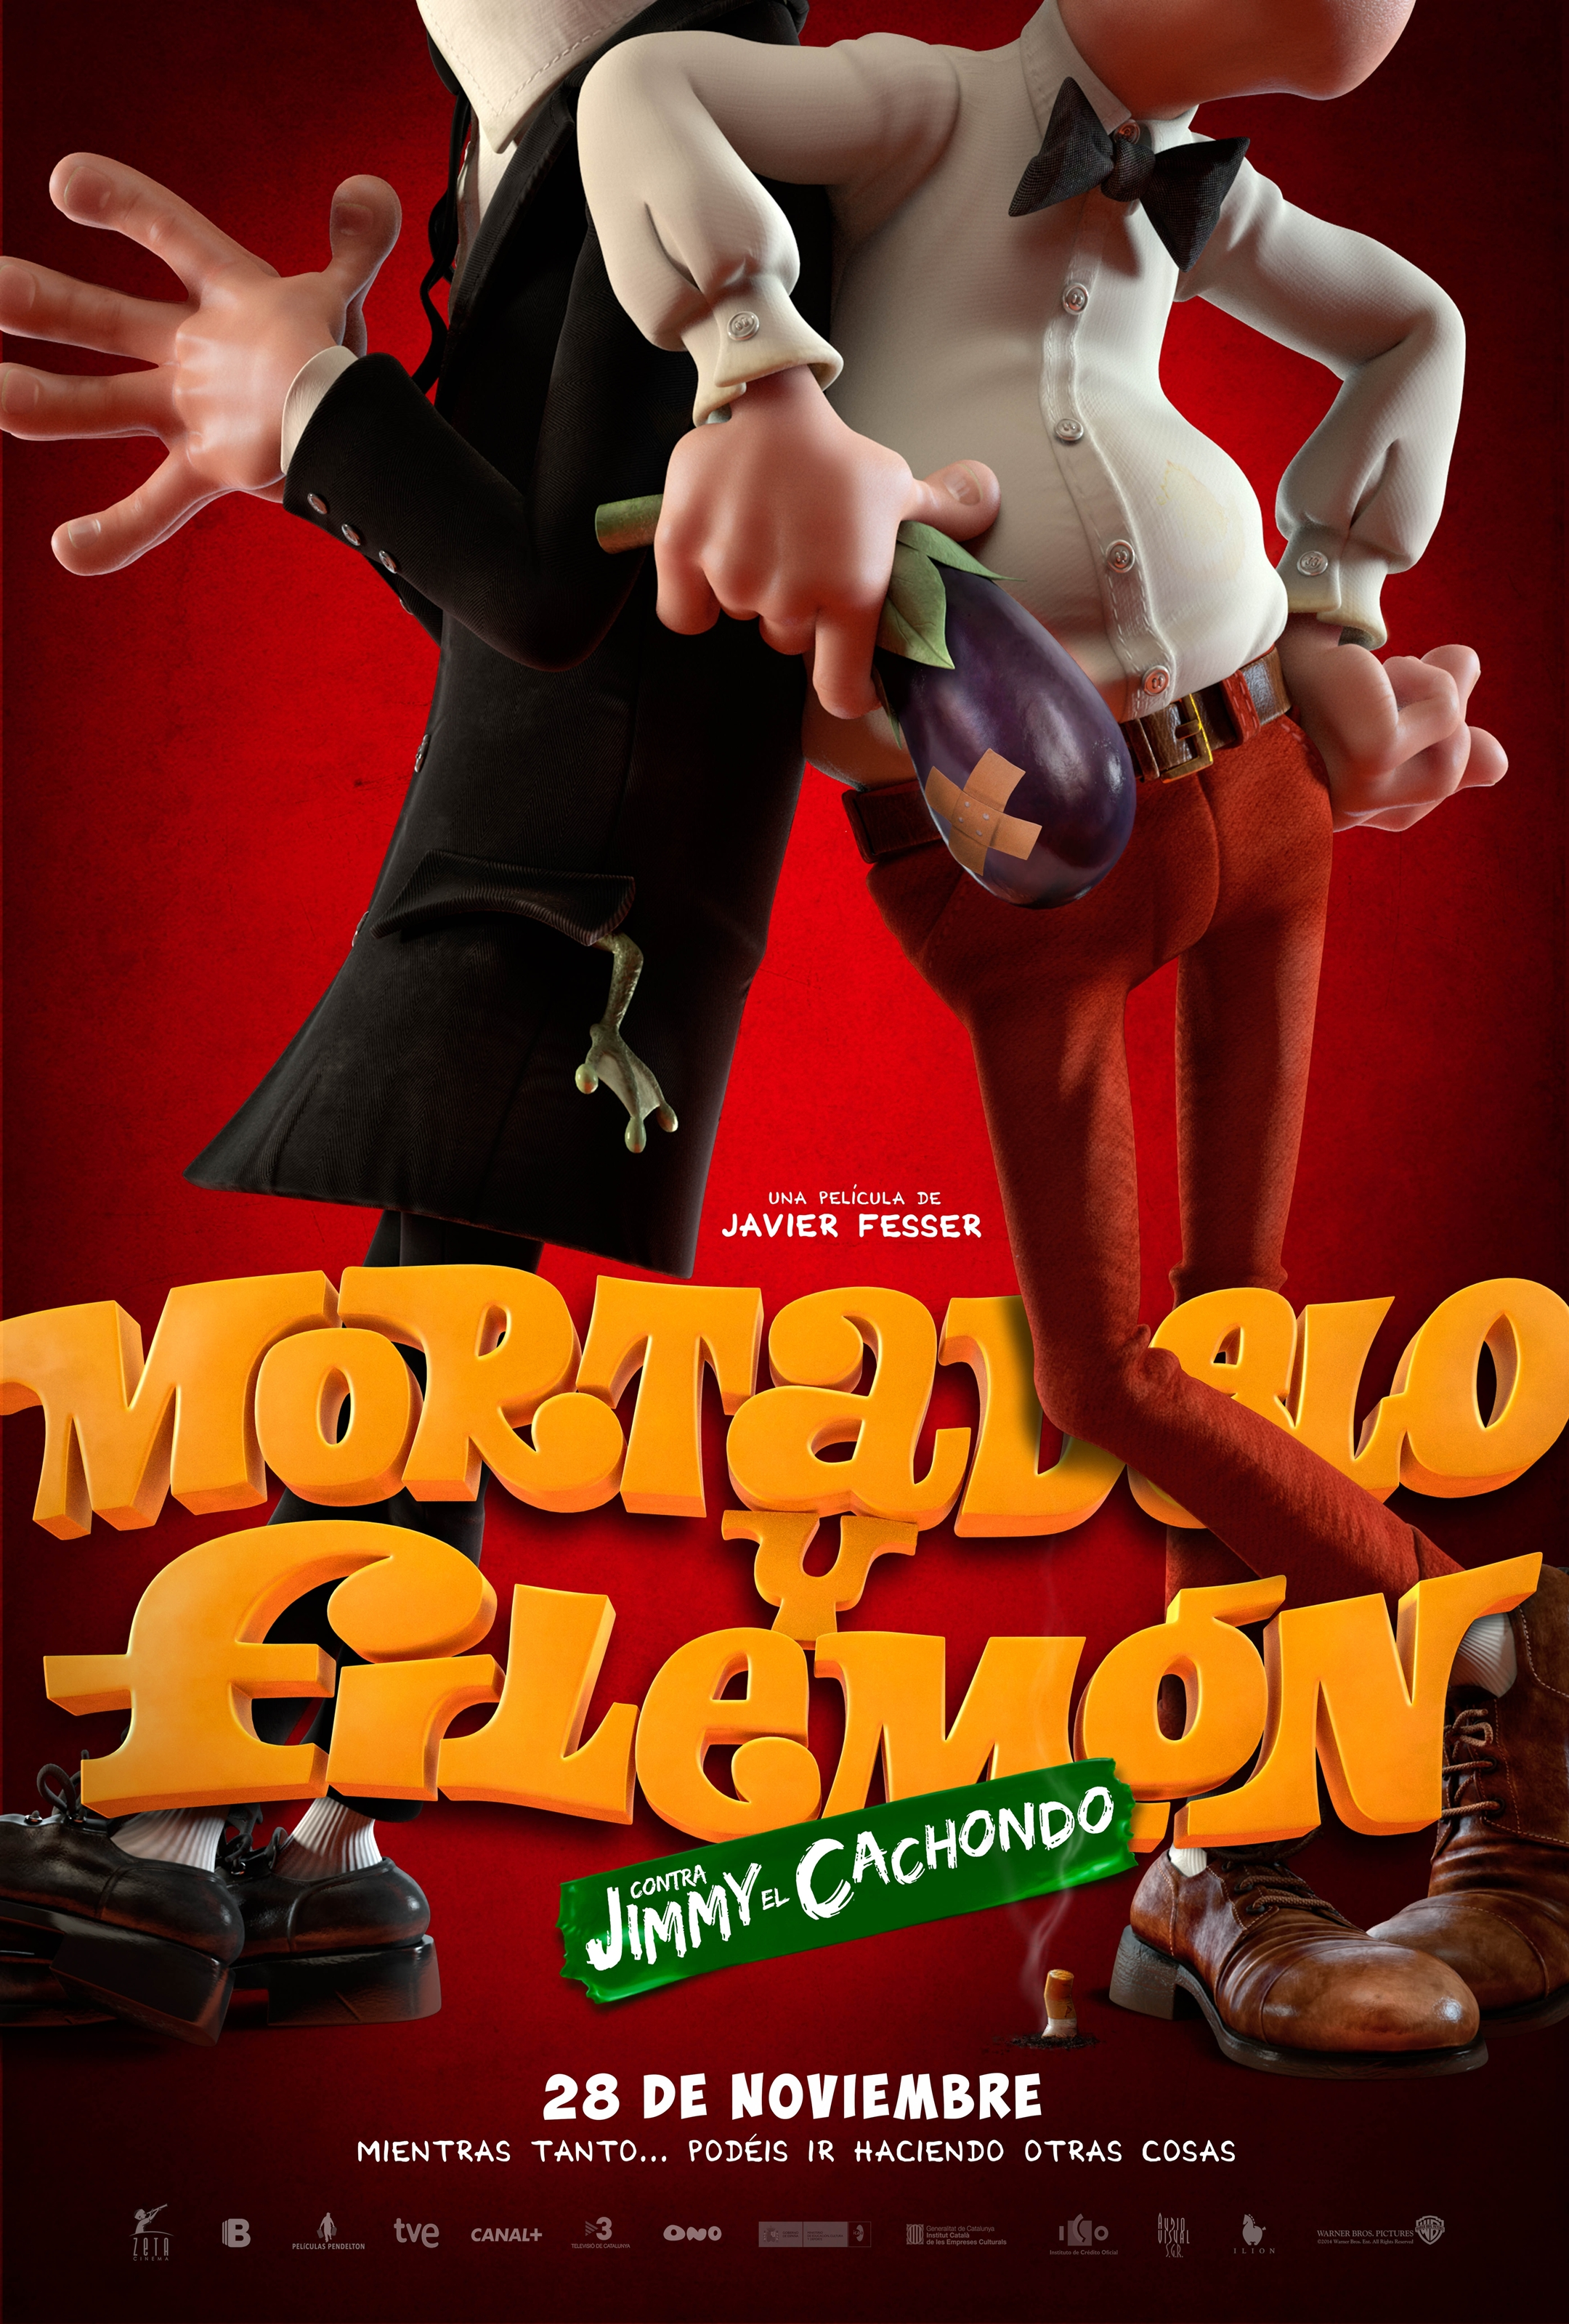 http://www.elseptimoarte.net/carteles/mortadelo_y_filemon_contra_jimmy_el_cachondo_28249.jpg